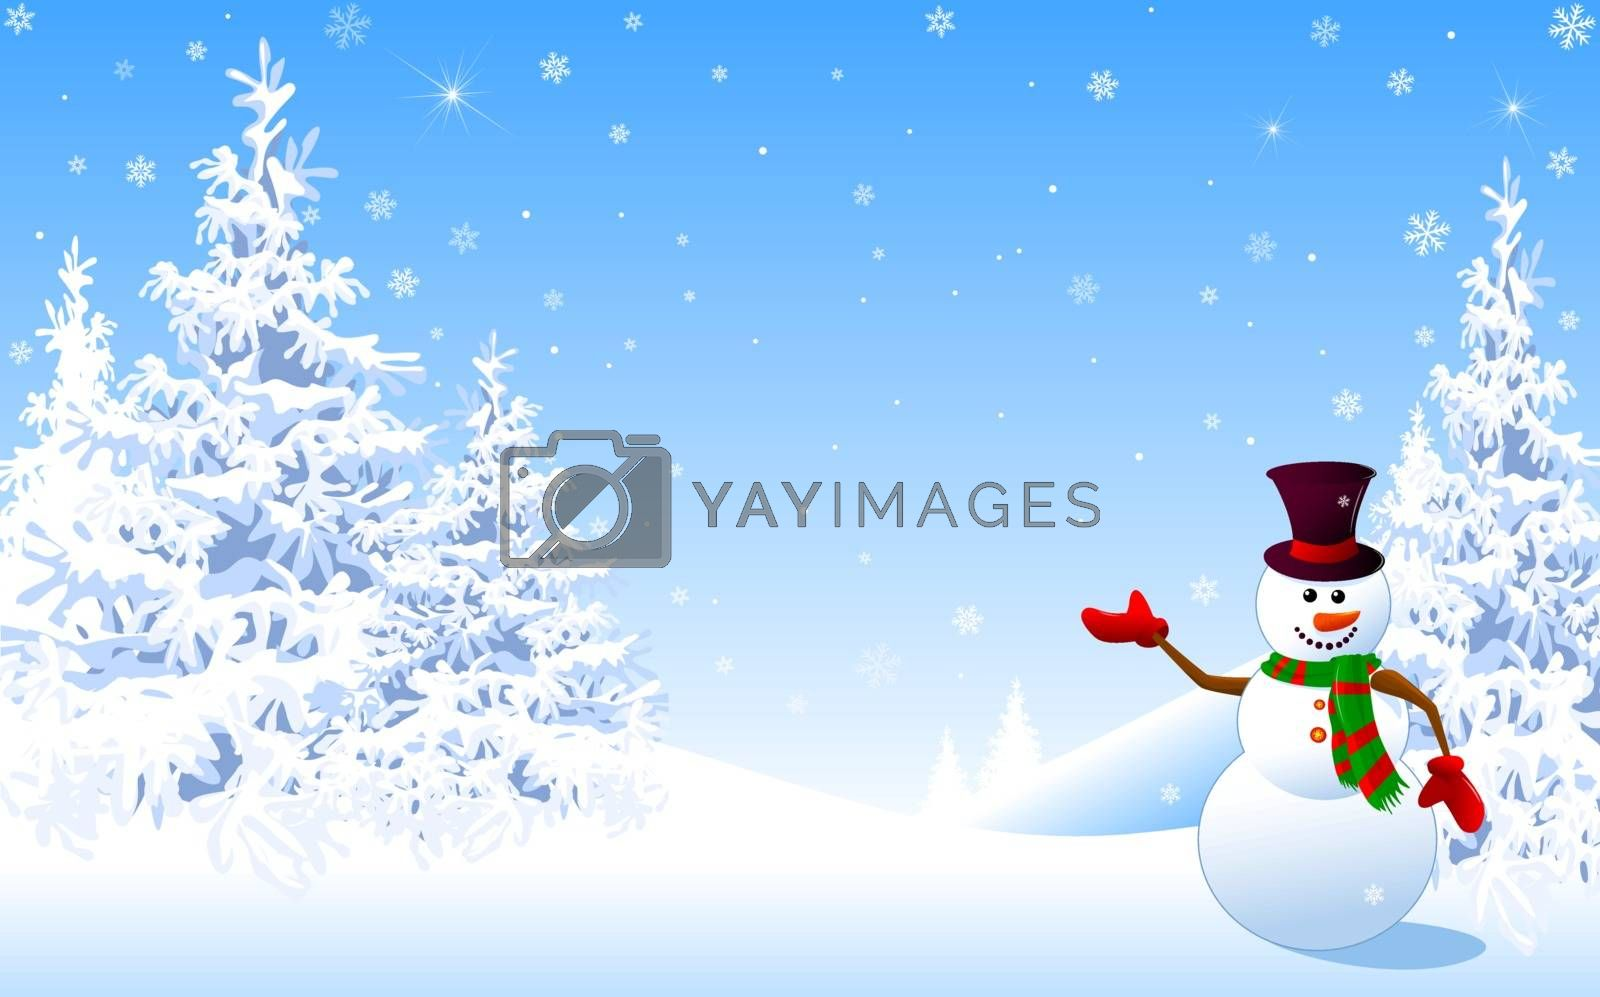 Snowman in a hat welcomes against the backdrop of a winter snowy forest. Snowman on the background of fir trees and snowflakes. Christmas invitation. Greeting card for Christmas and New Year.